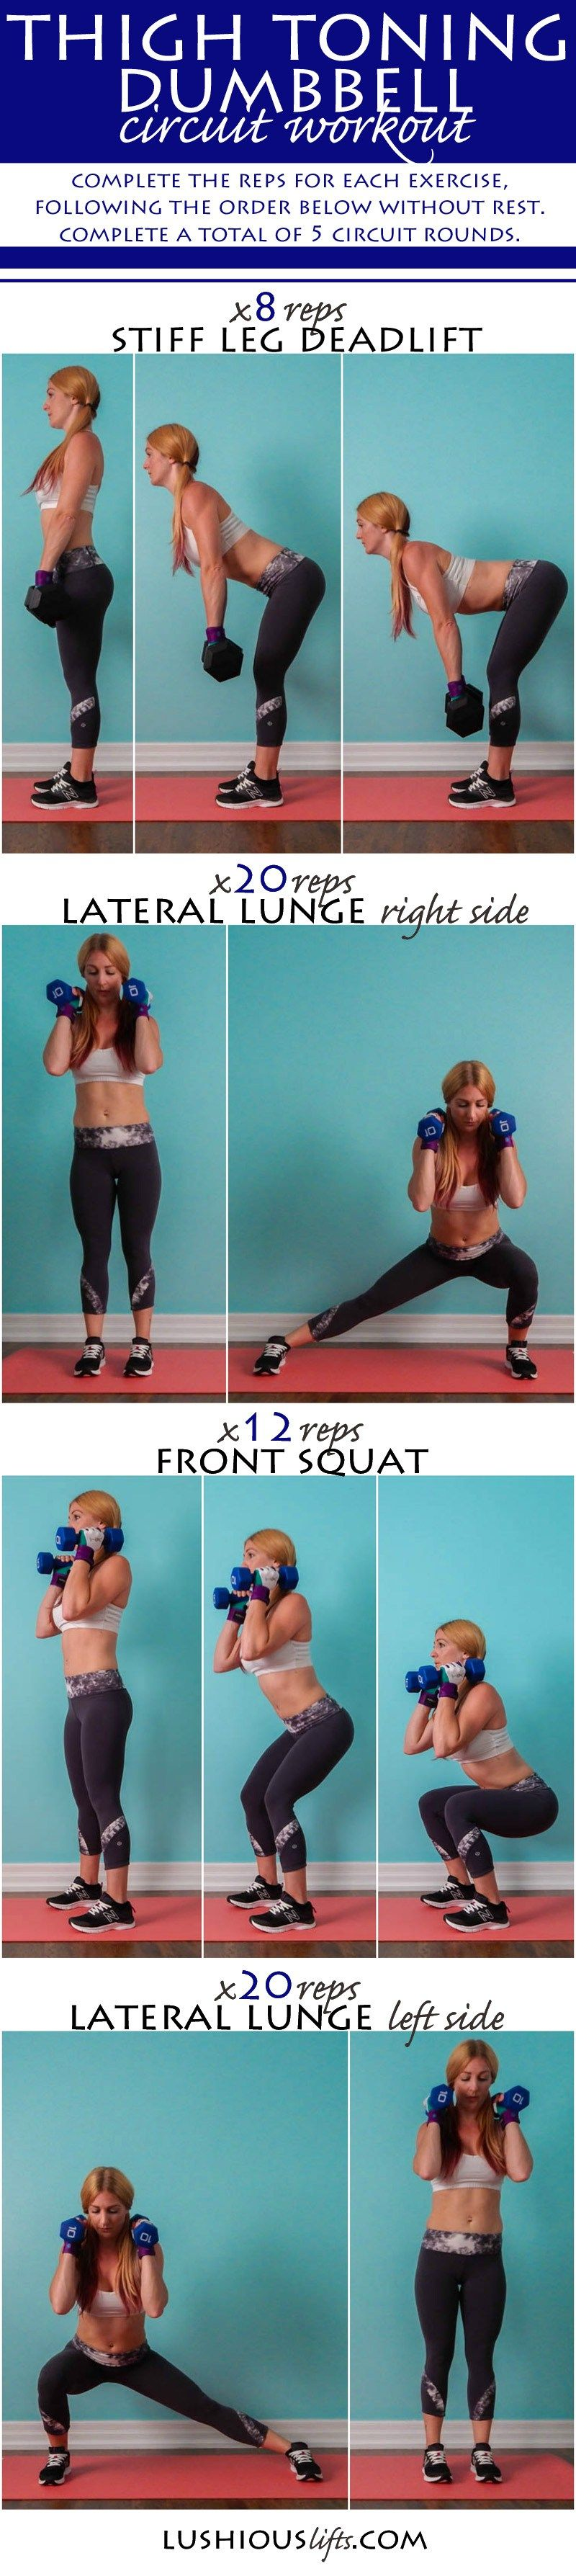 Thigh Toning Dumbbell Circuit Workout || lushiousLIFTS.com | all ...